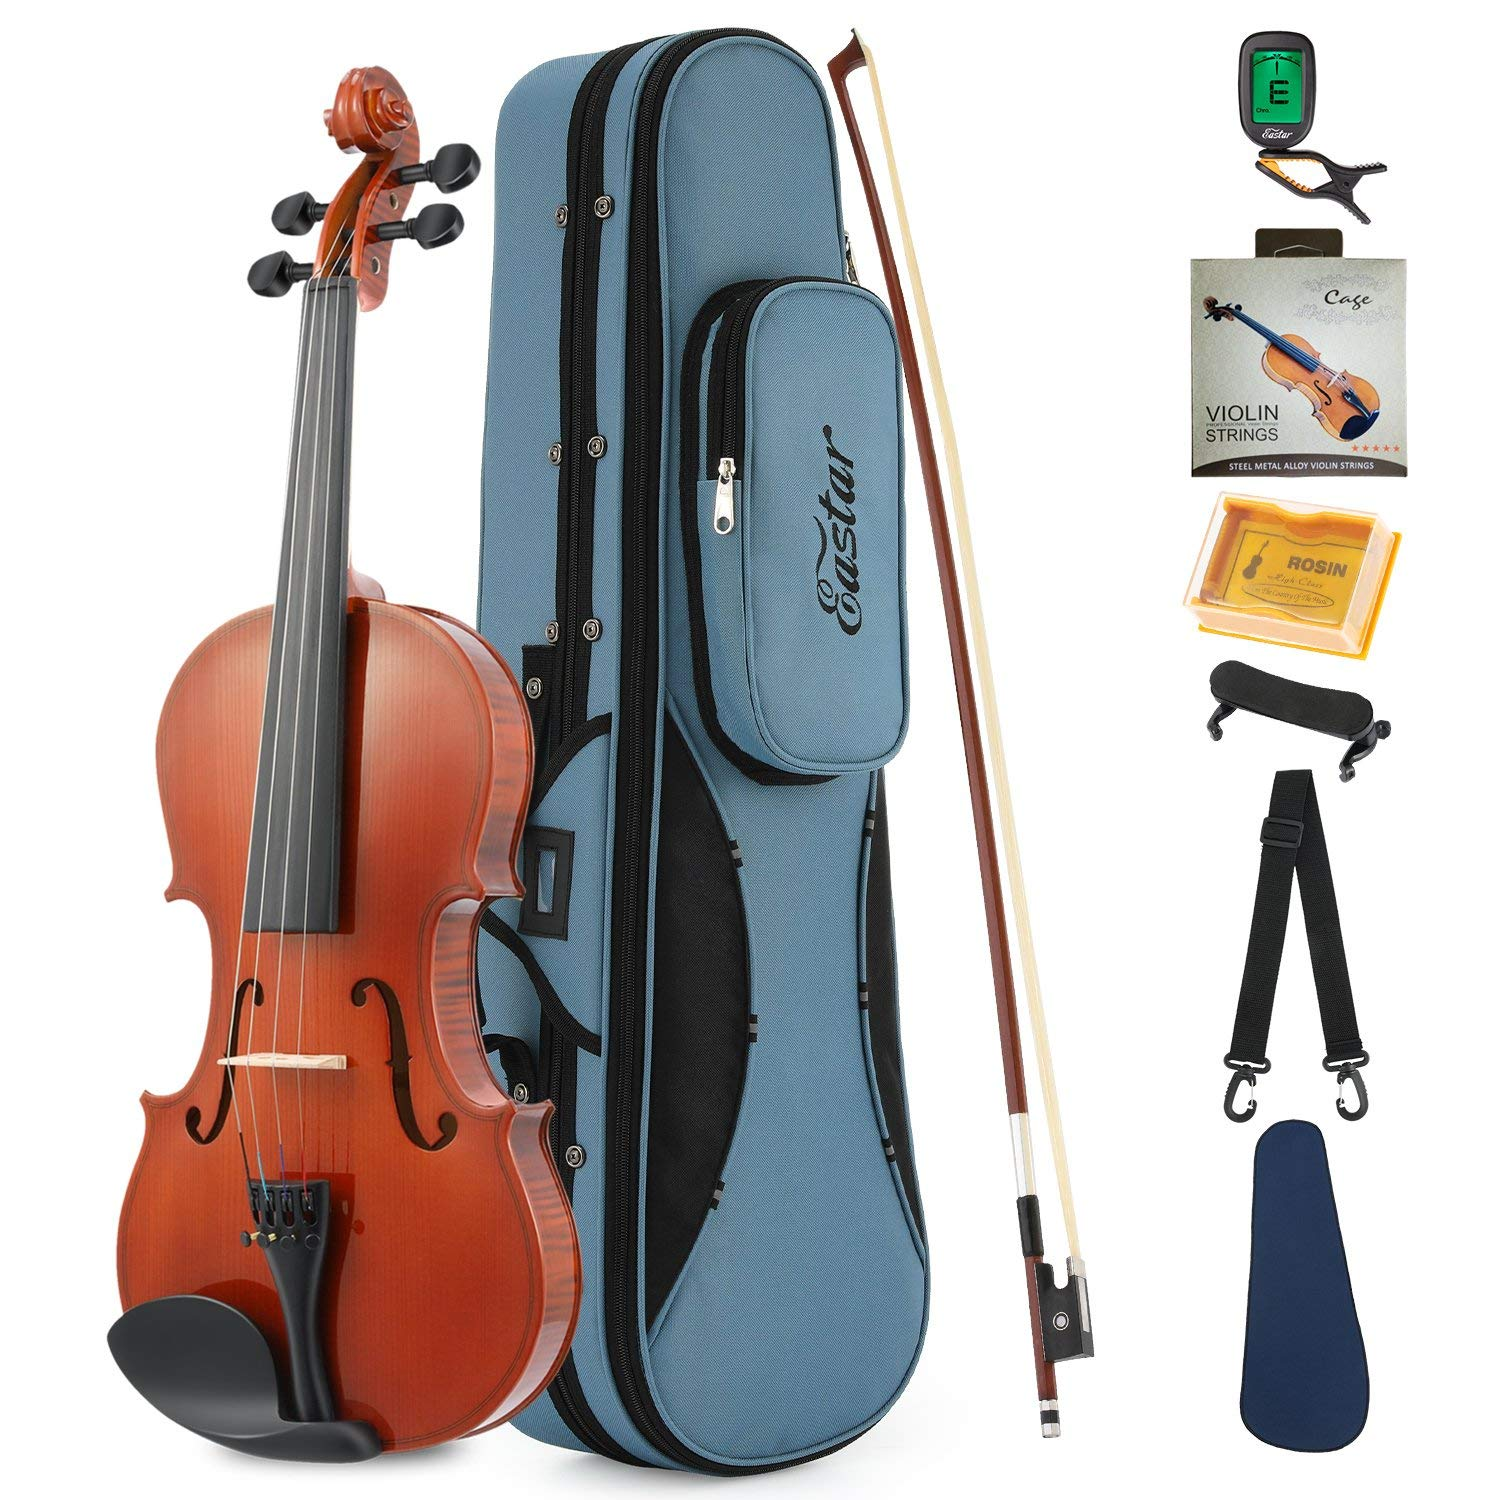 Eastar EVA-1 3/4 Natural Violin Set For Beginner Student with Hard Case, Rosin, Shoulder Rest, Bow, Clip-on Tuner and Extra Strings by Eastar (Image #1)